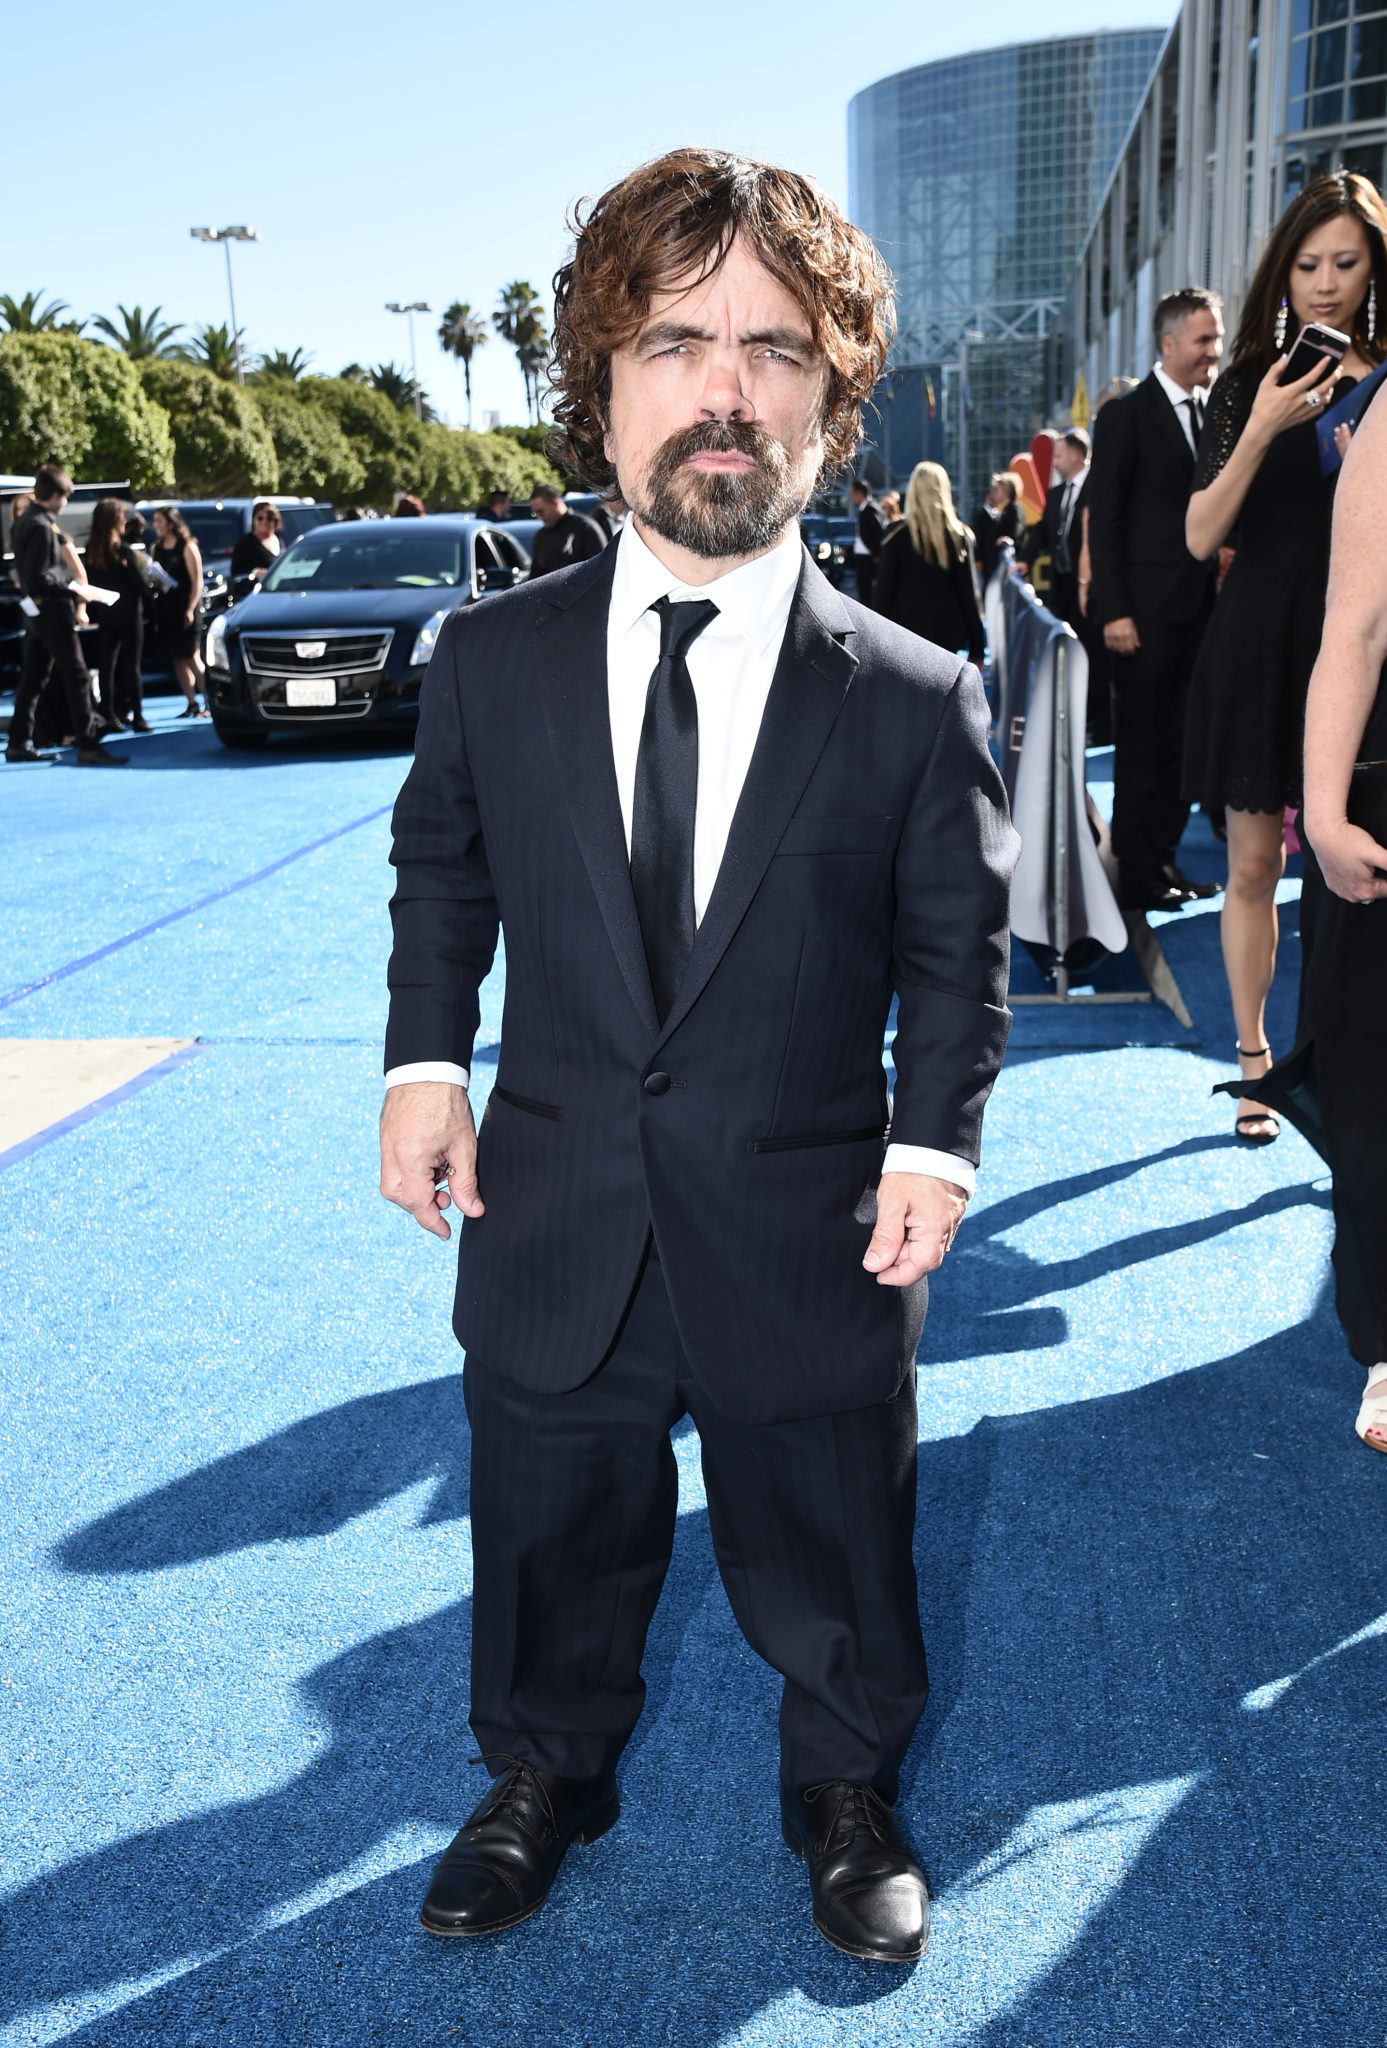 Peter Dinklage Emmys 4Chion Lifestyle